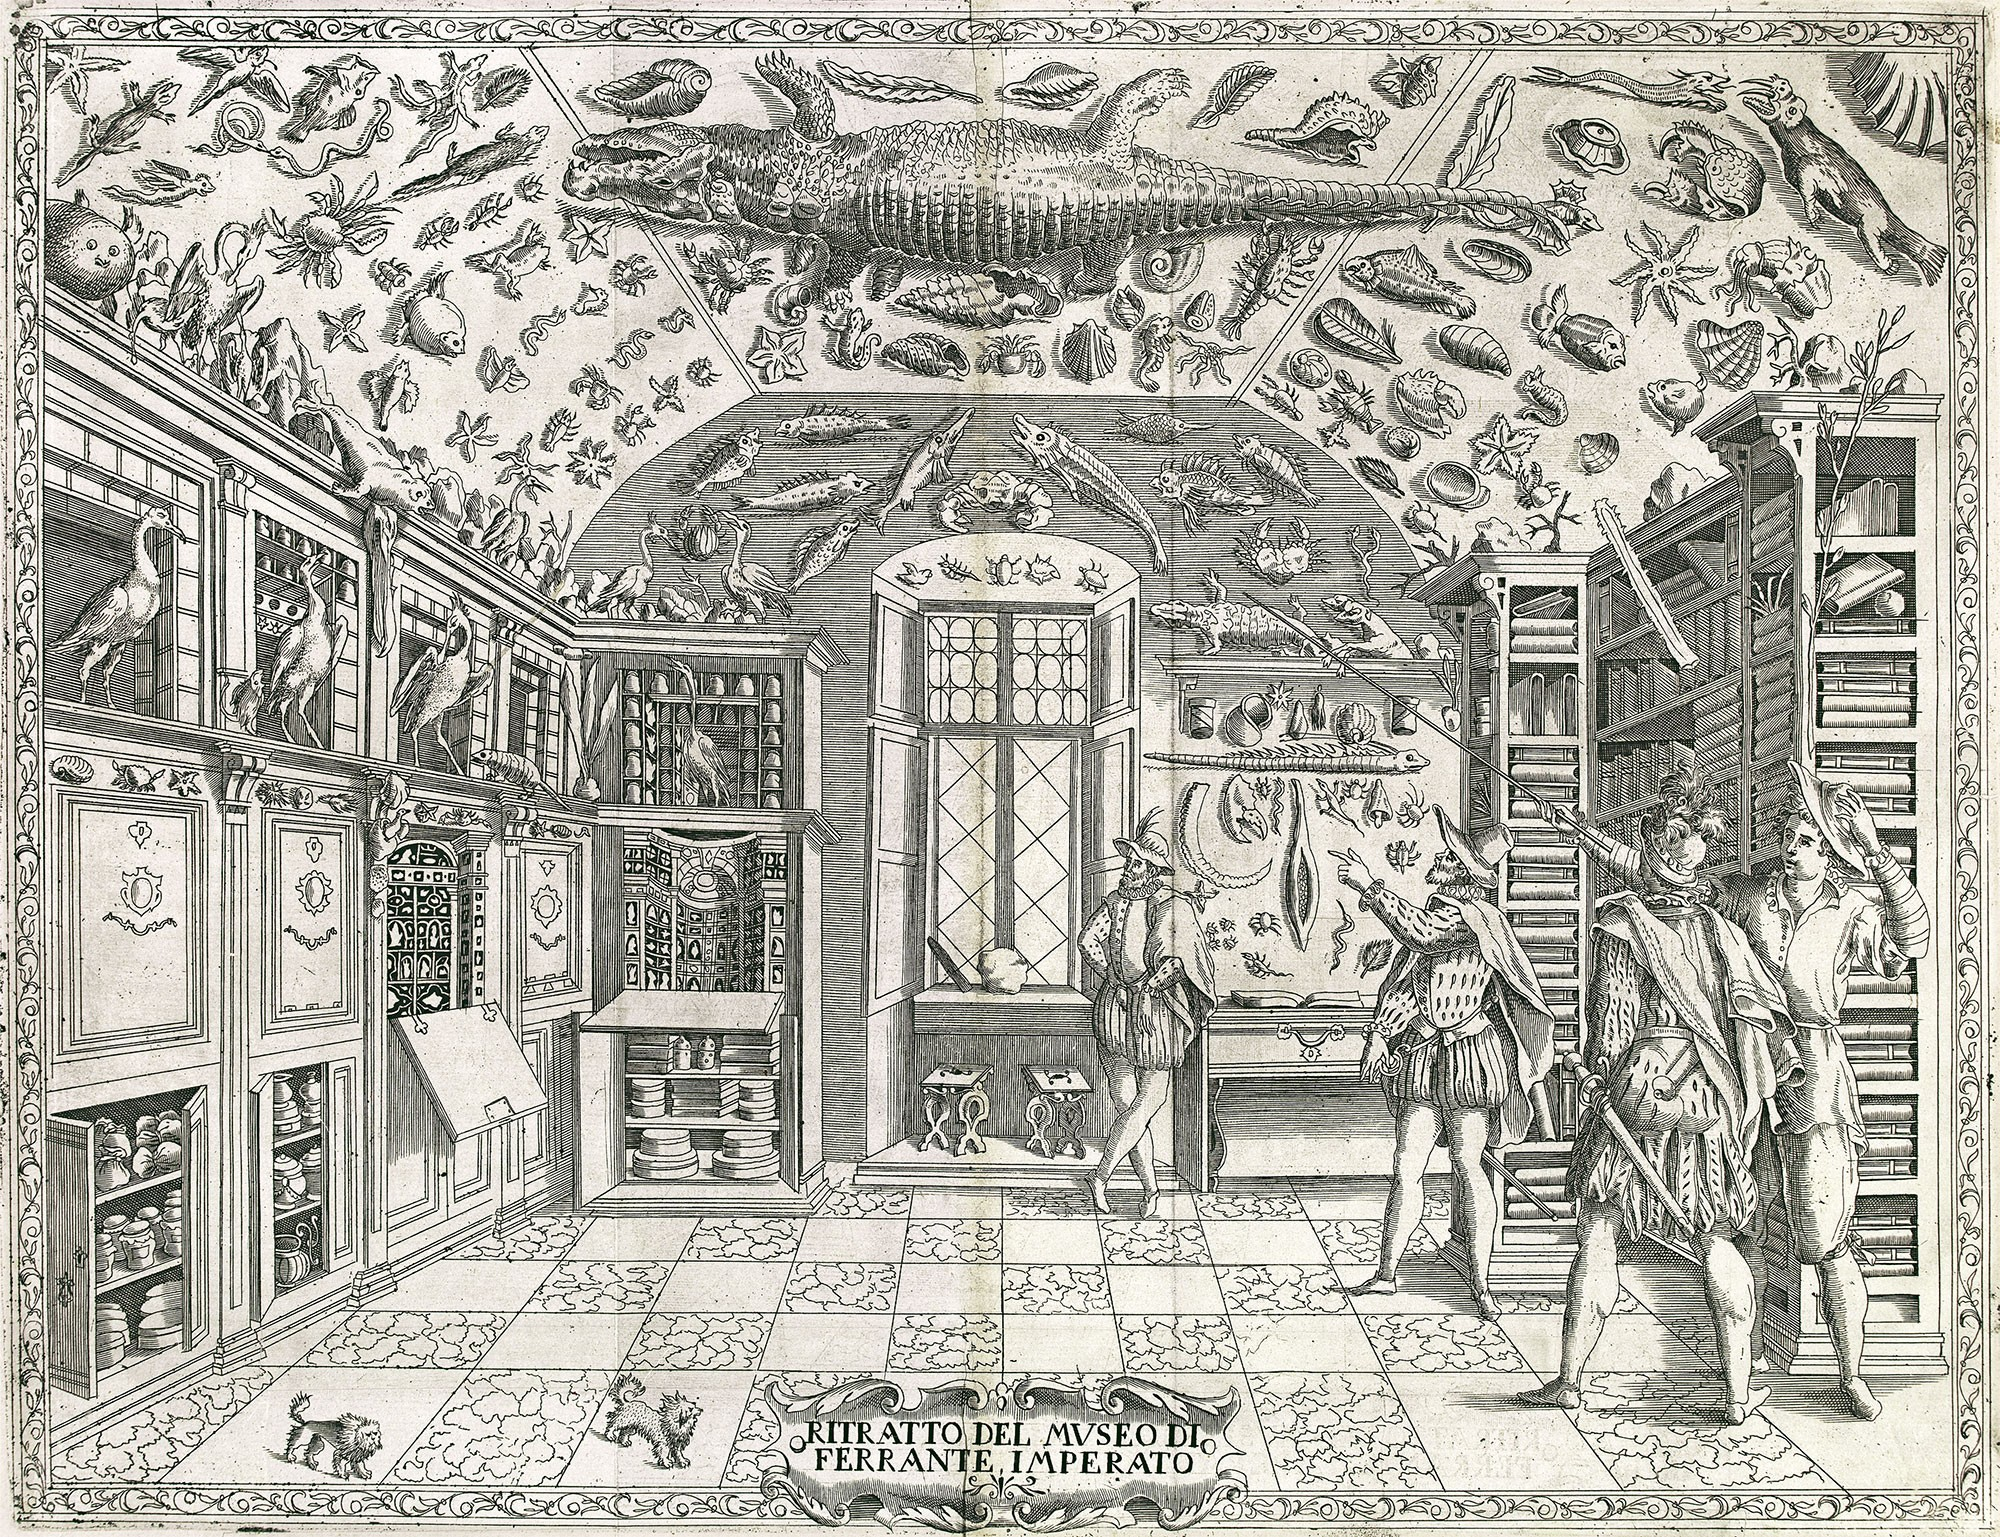 Fold-out engraving from Ferrante Imperato's Dell'Historia Naturale (Naples 1599), the earliest illustration of a natural history cabinet